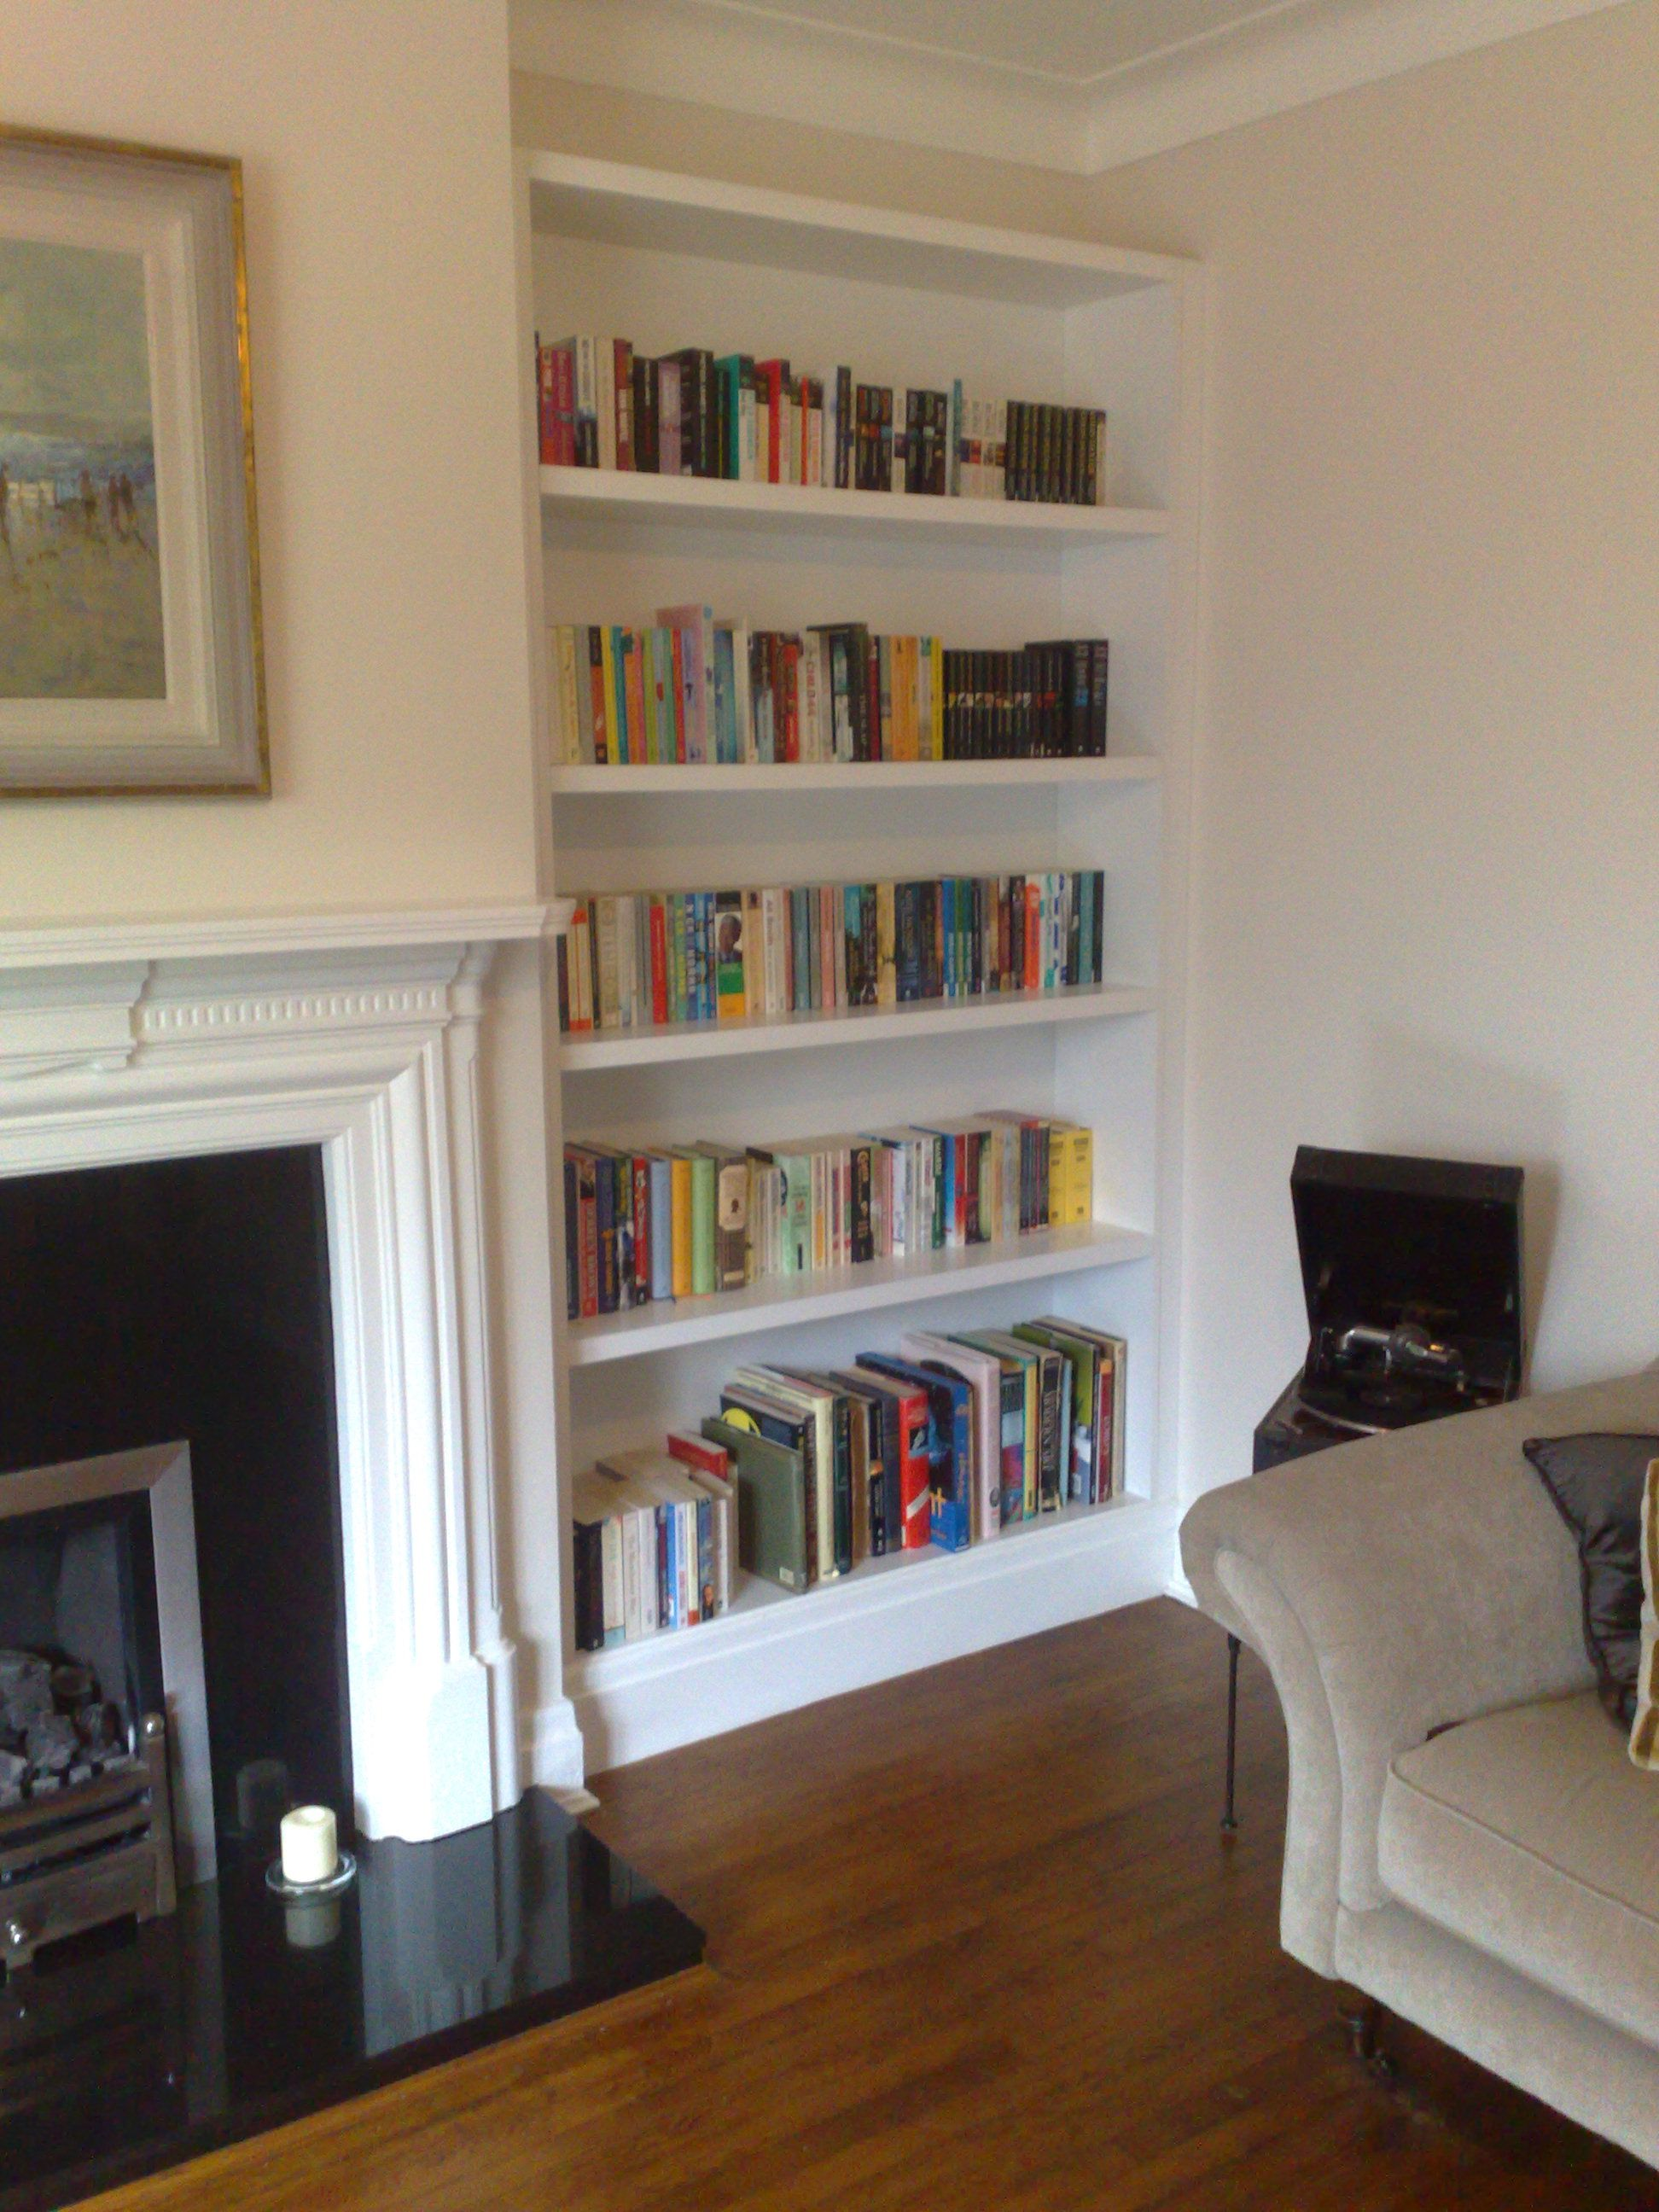 Sofa Gumtree Darlington Alcove Bookshelves Of Course And A Lovely Wood Floor For The